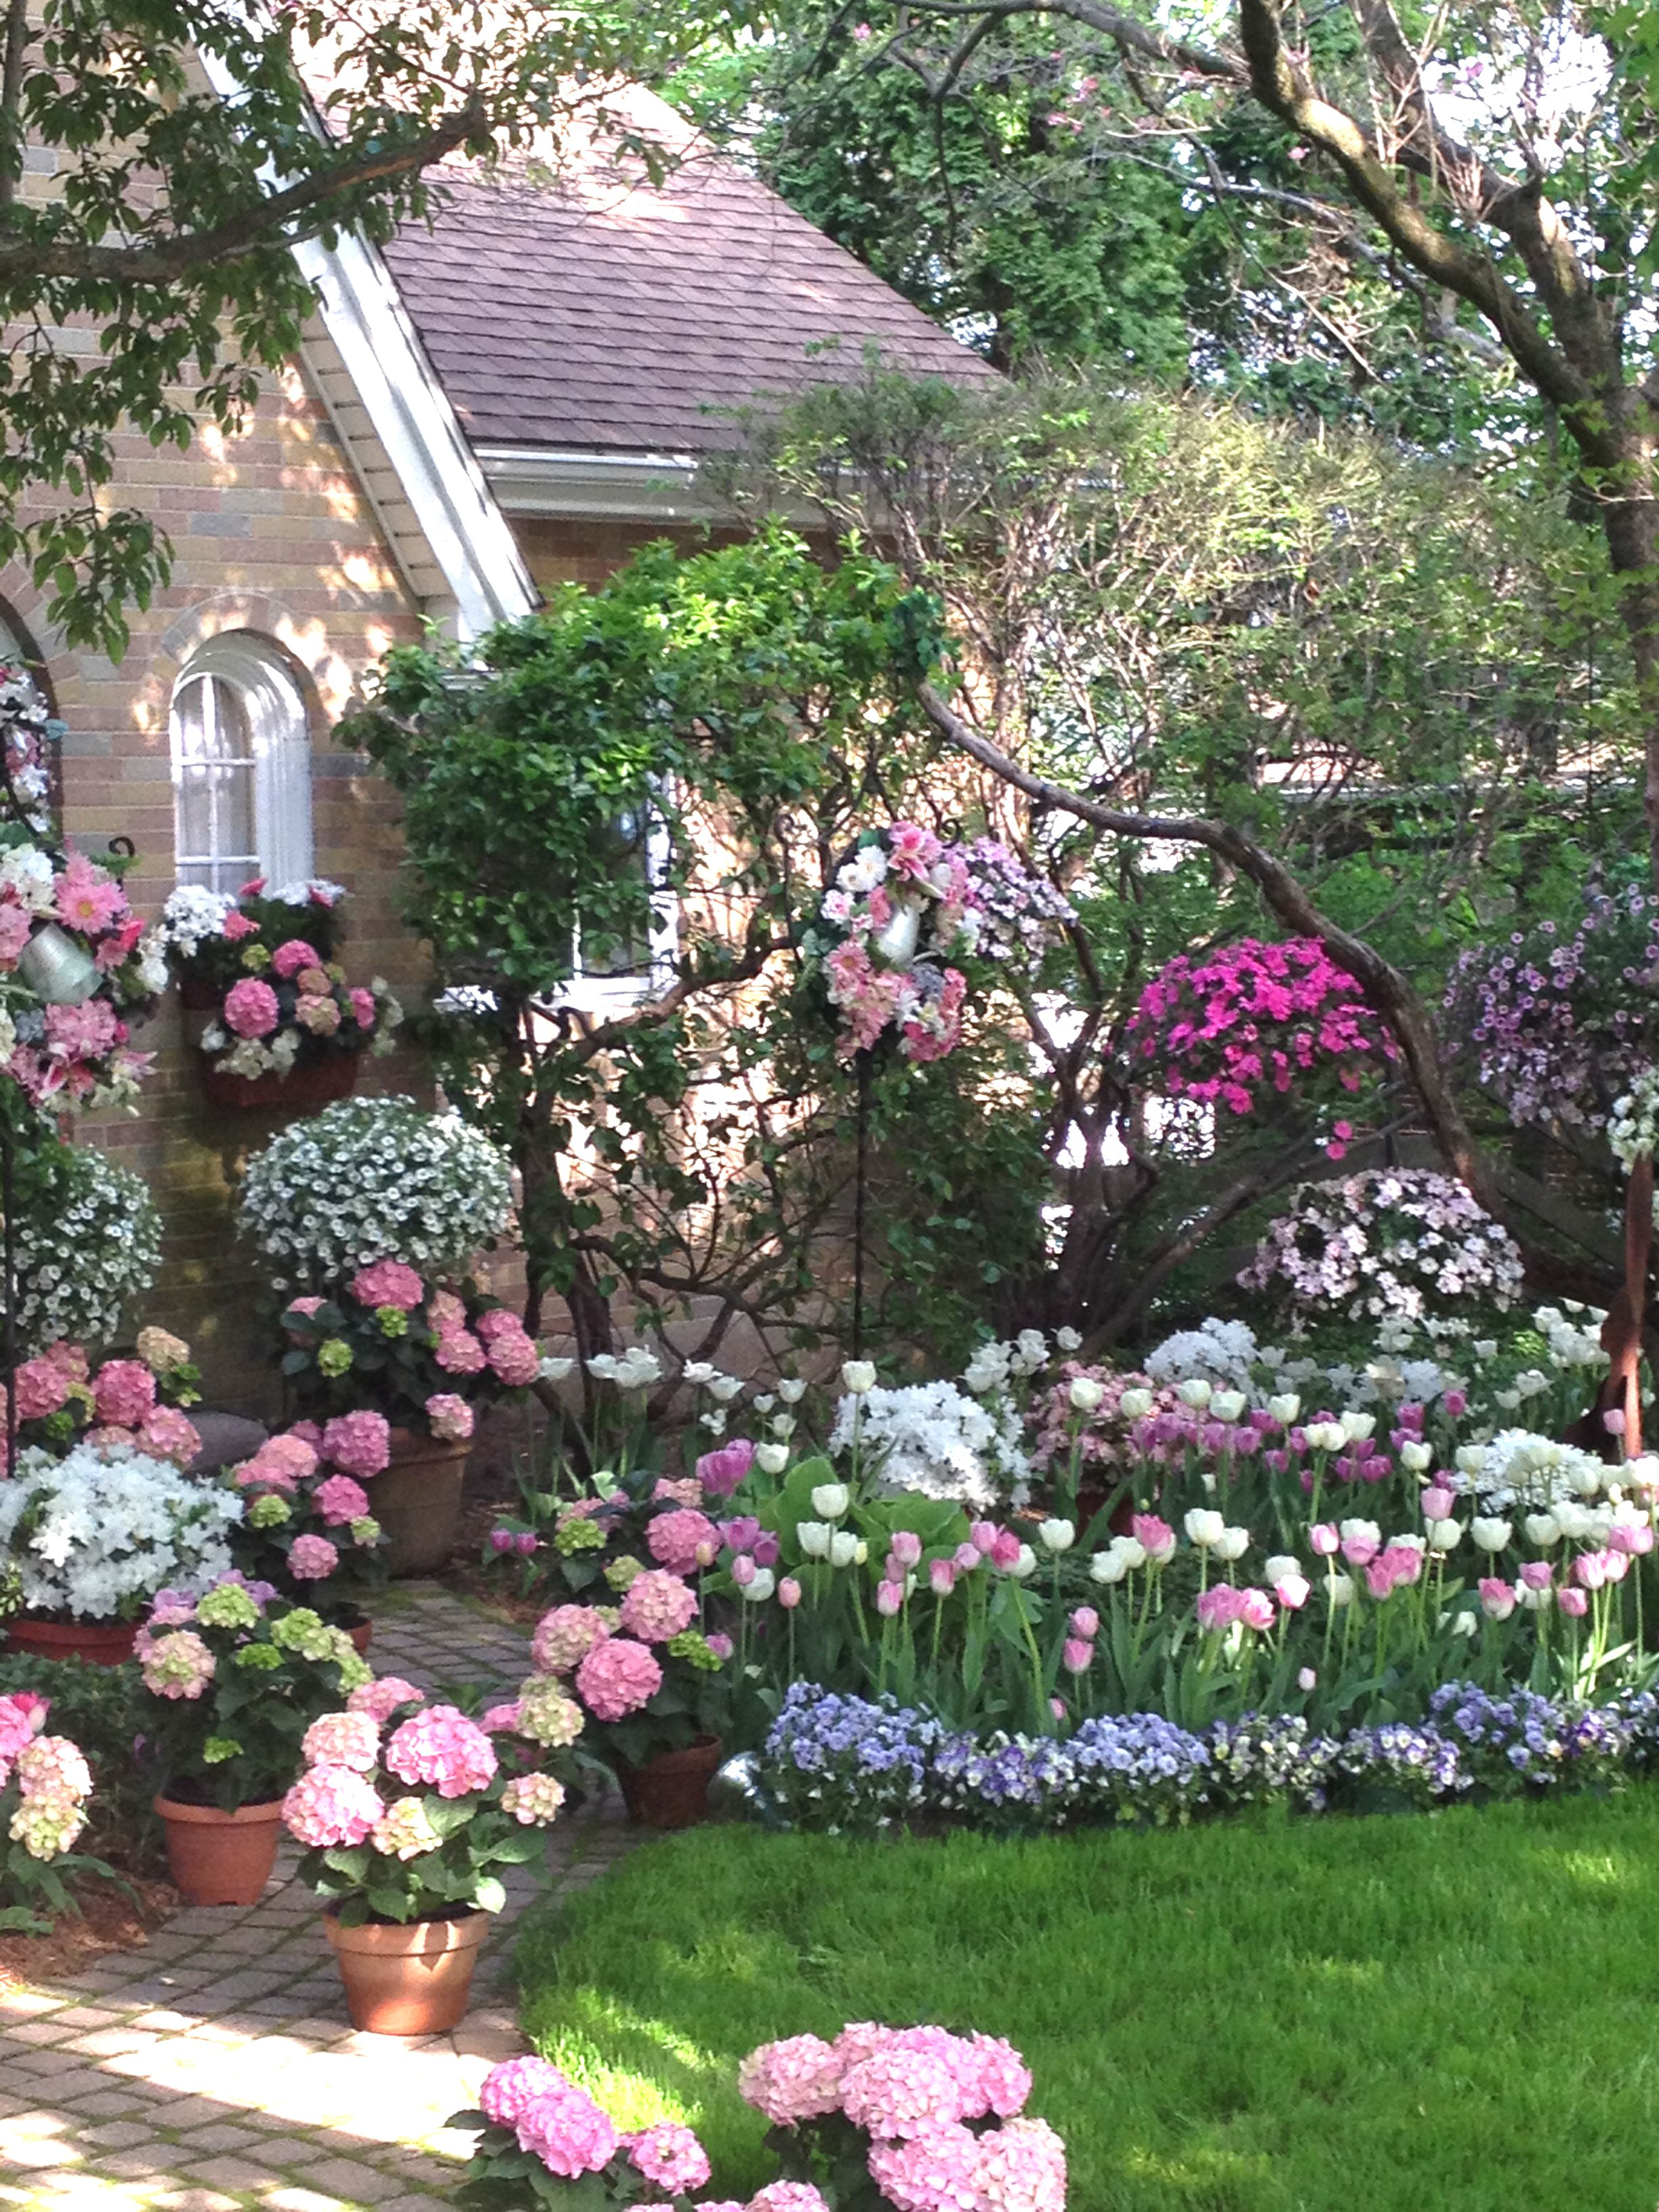 Pinner says: This garden appears every May with lots of hard work ...